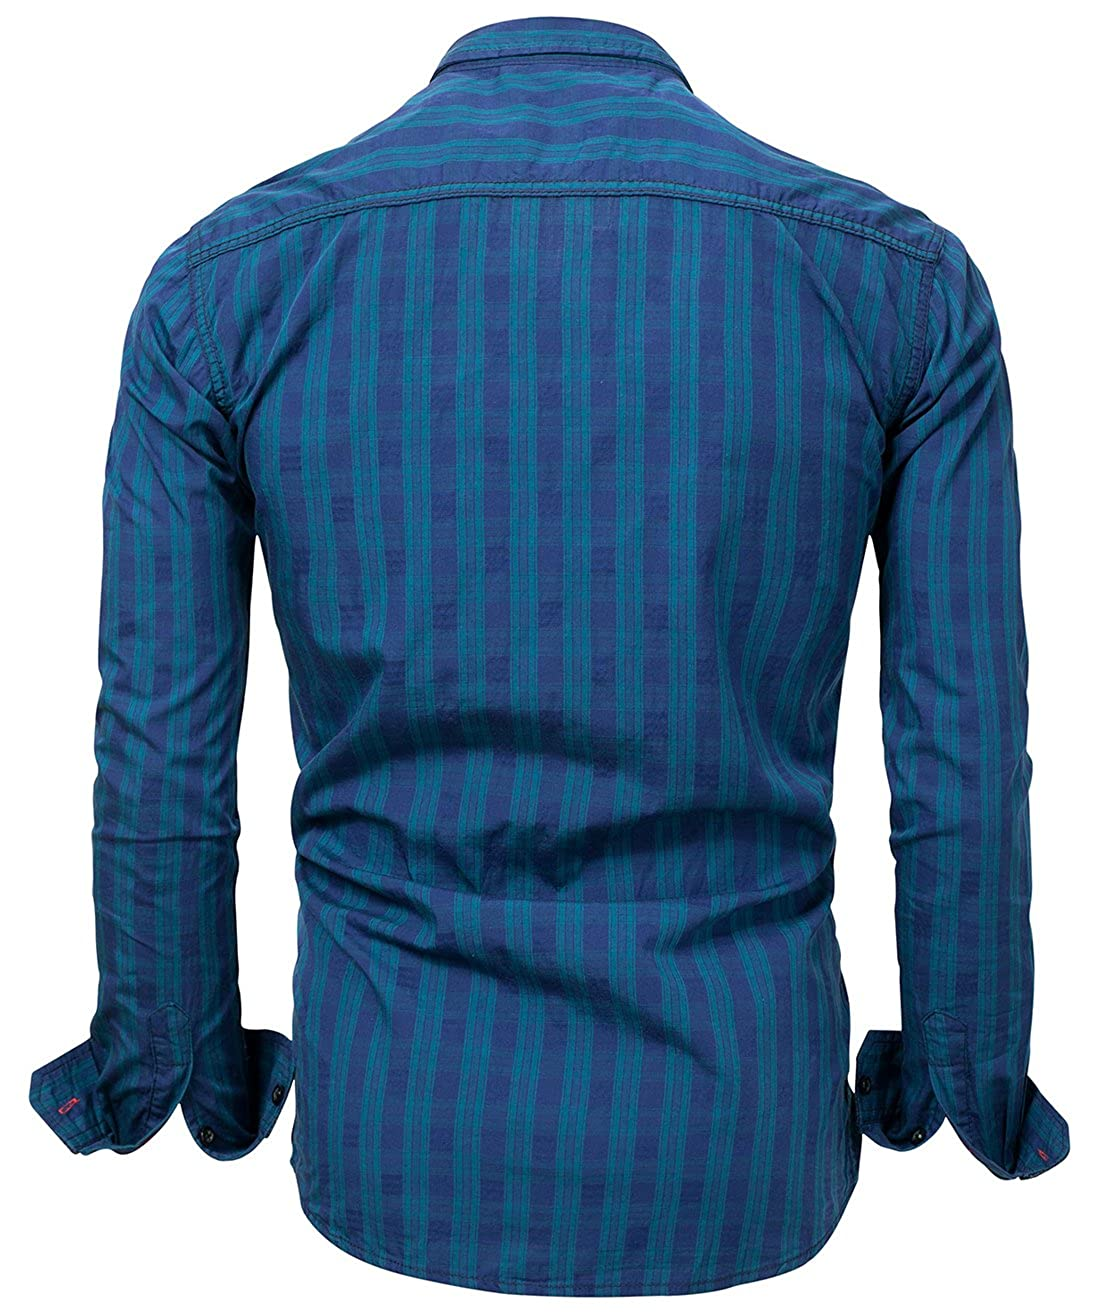 Mens All-Season Spread Collar Tailored Button Front Plaid Button Up Shirt